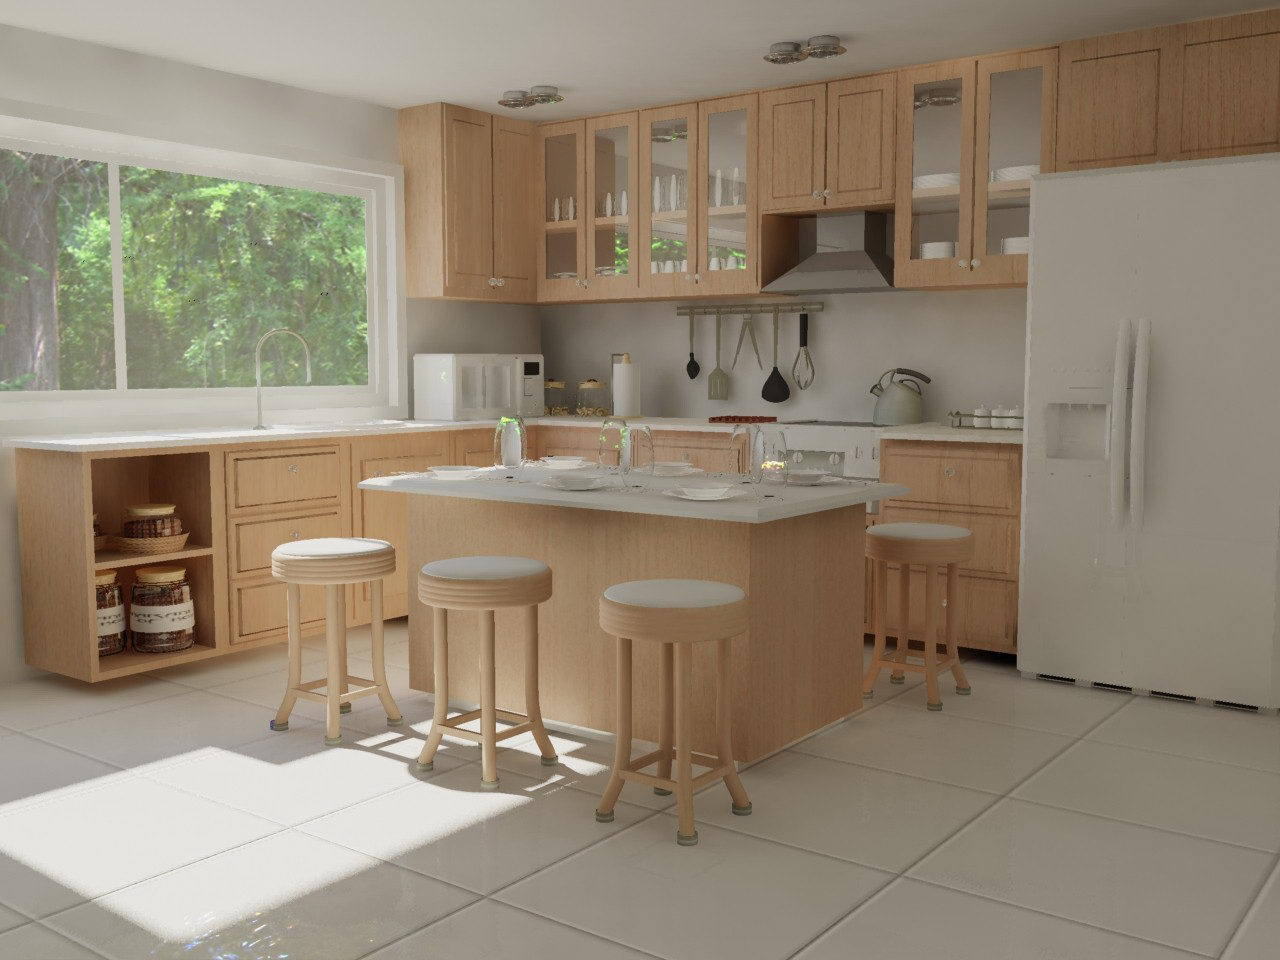 Kitchen Design Pictures Simple